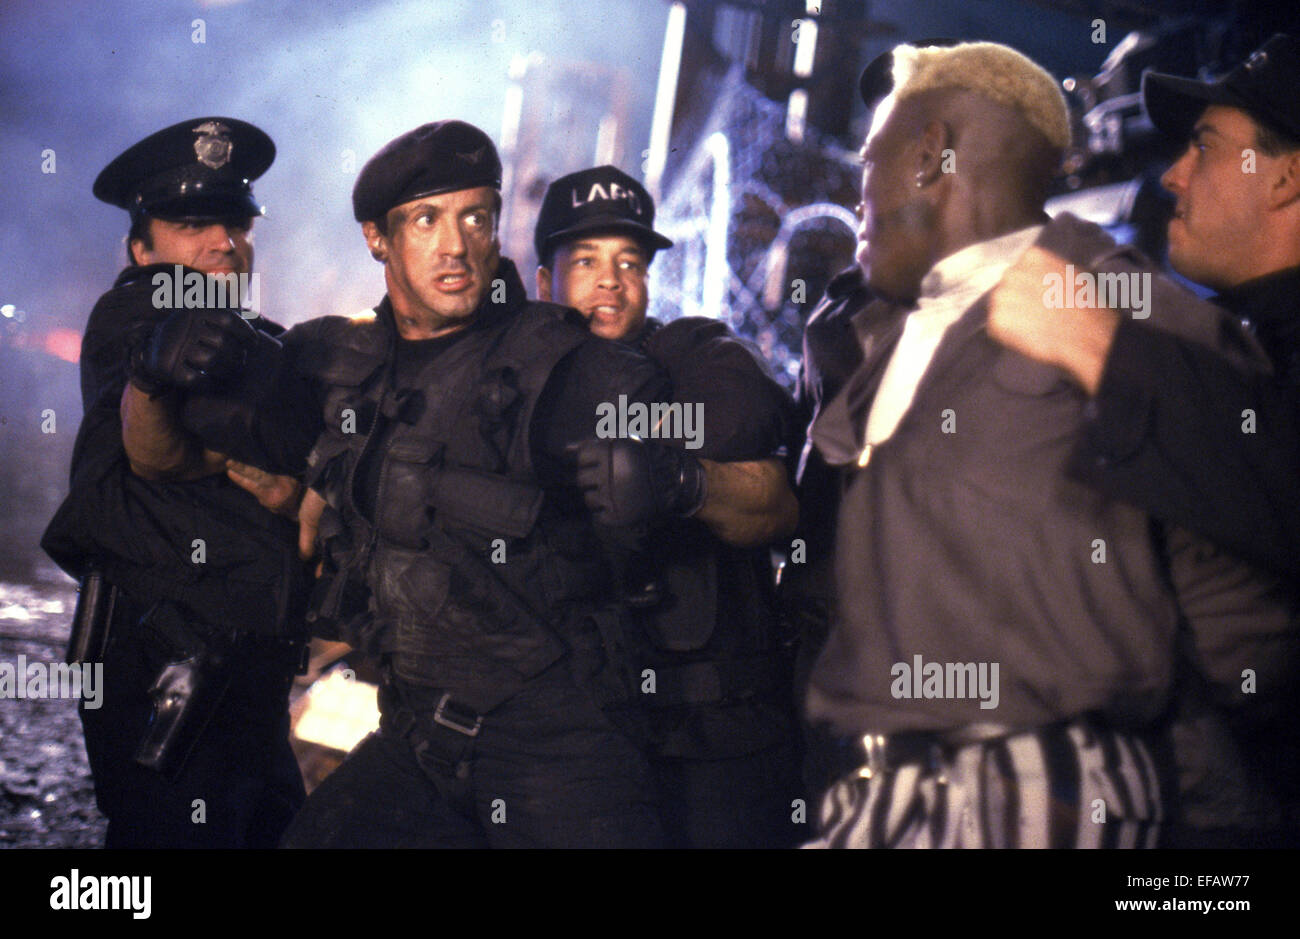 SYLVESTER STALLONE & WESLEY SNIPES DEMOLITION MAN (1993) - Stock Image